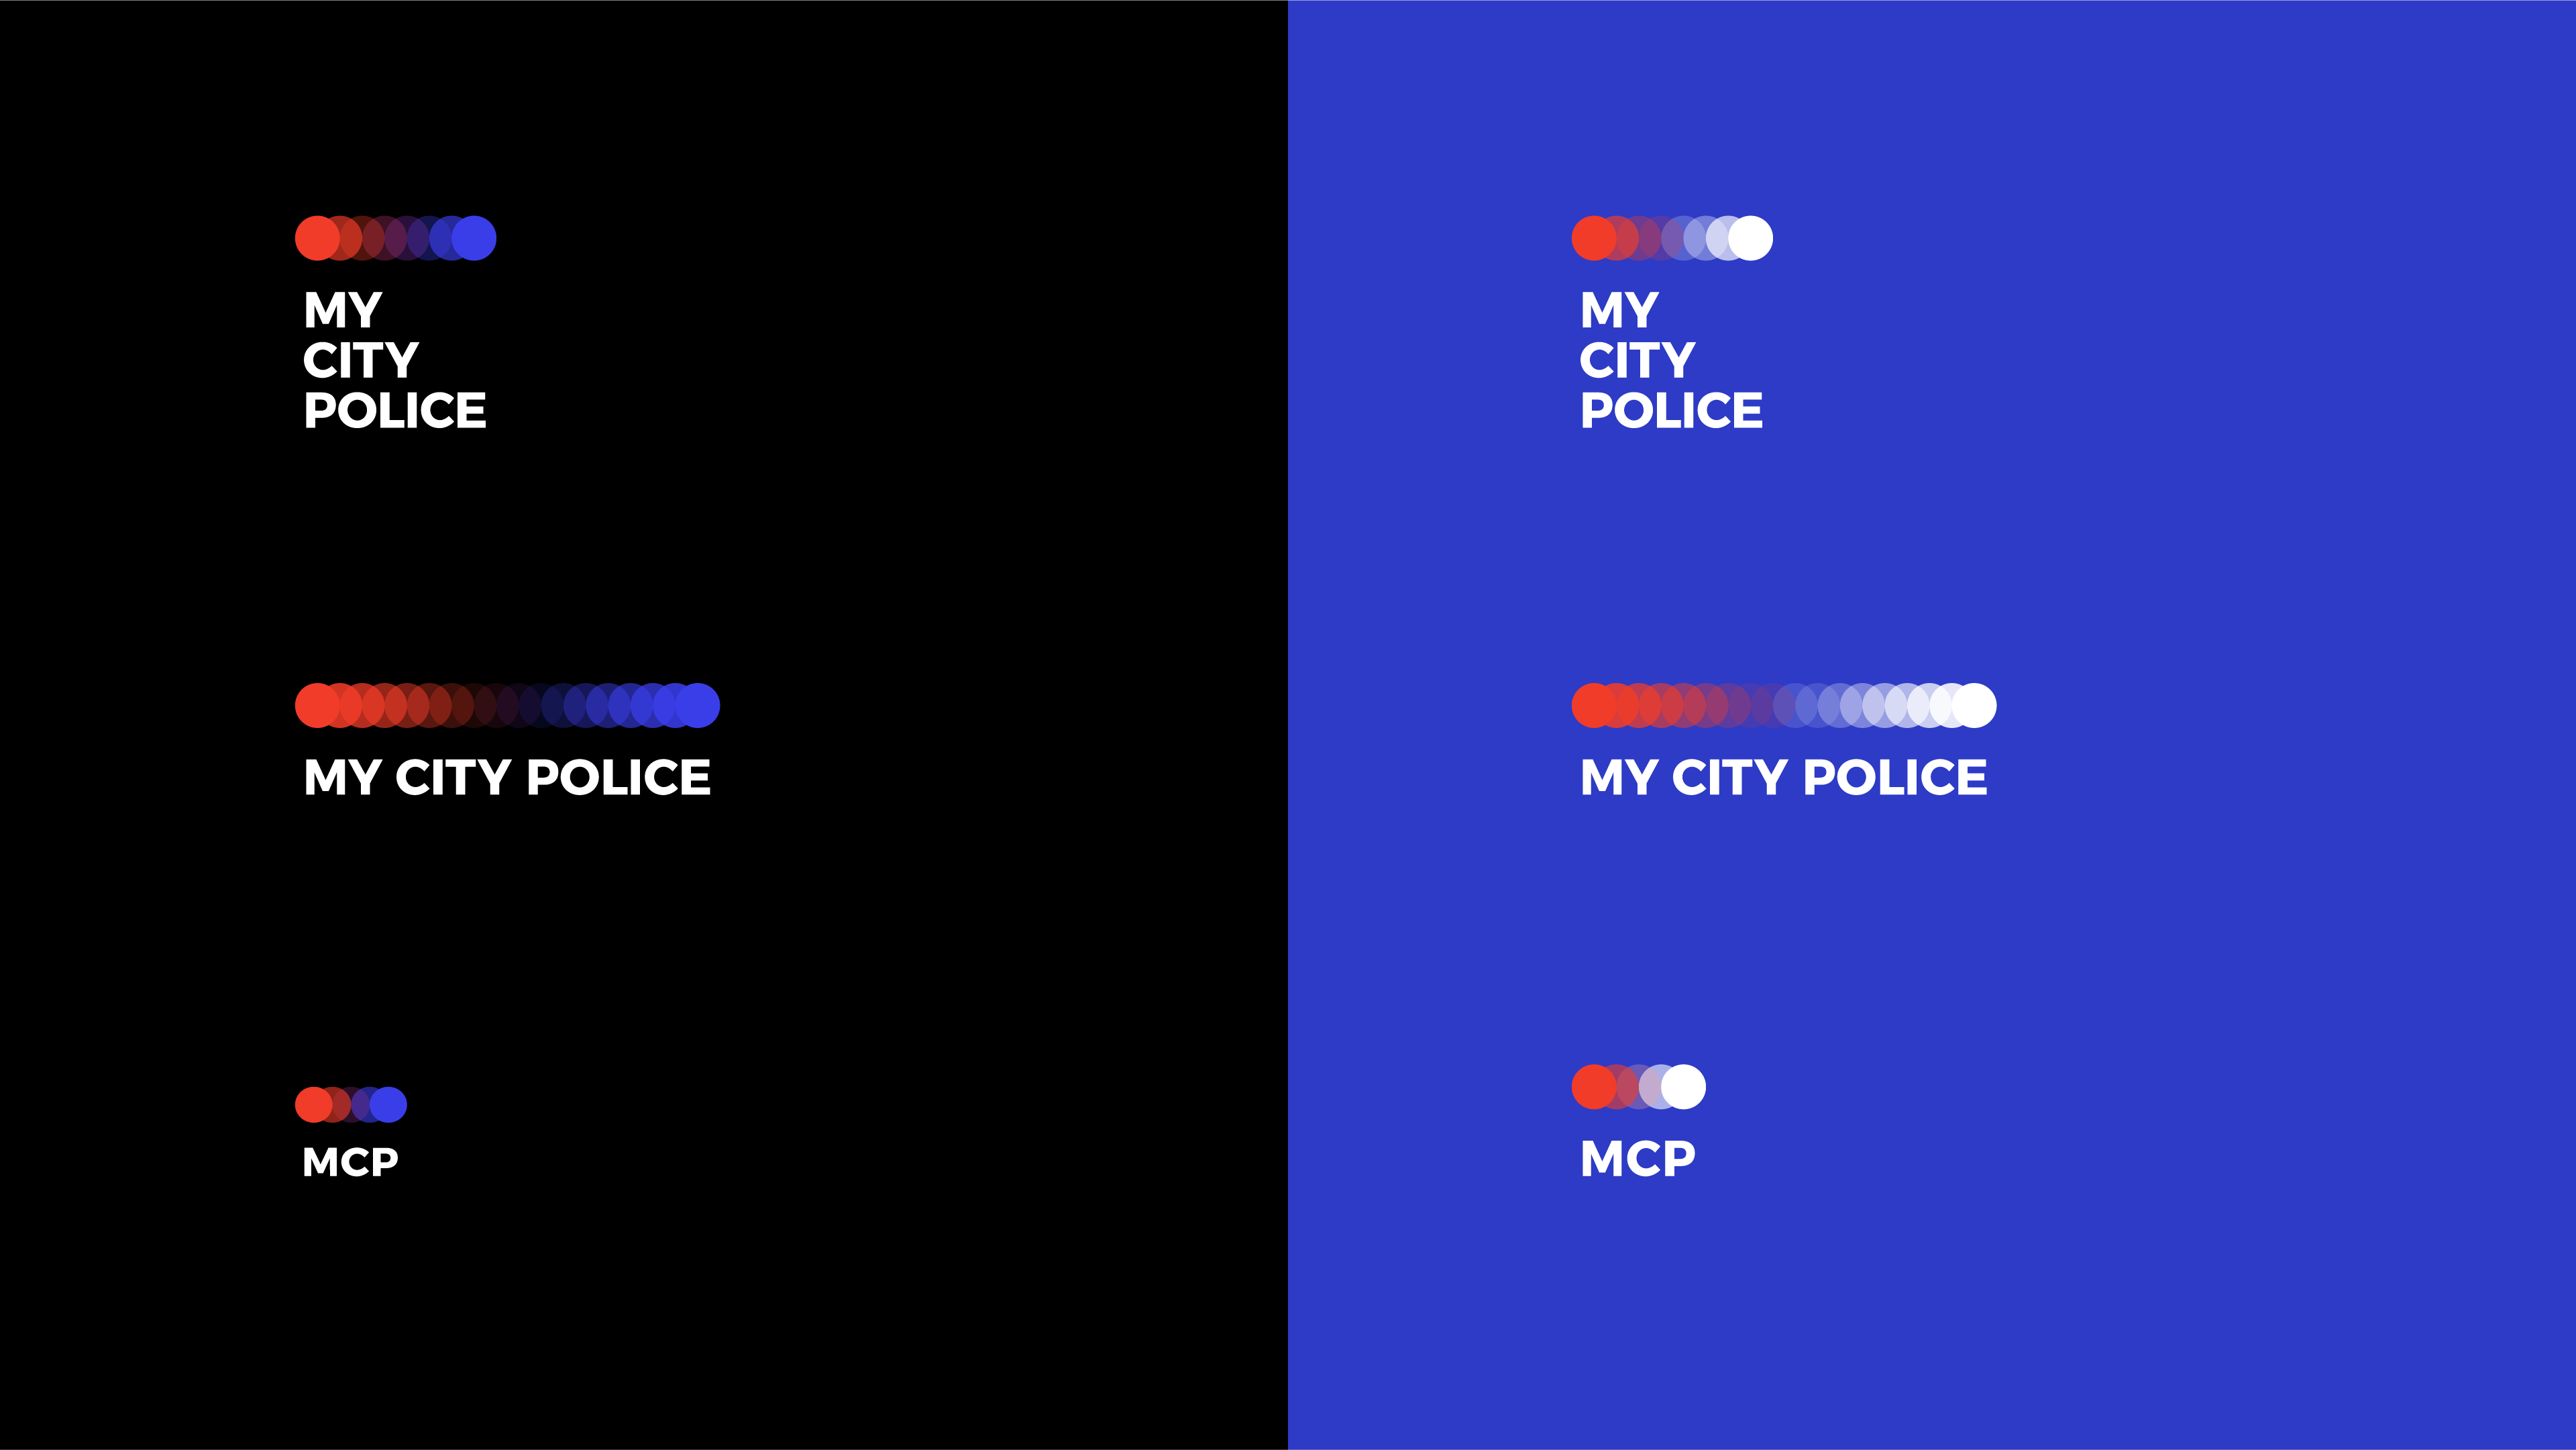 My City Police - The Codeine Design